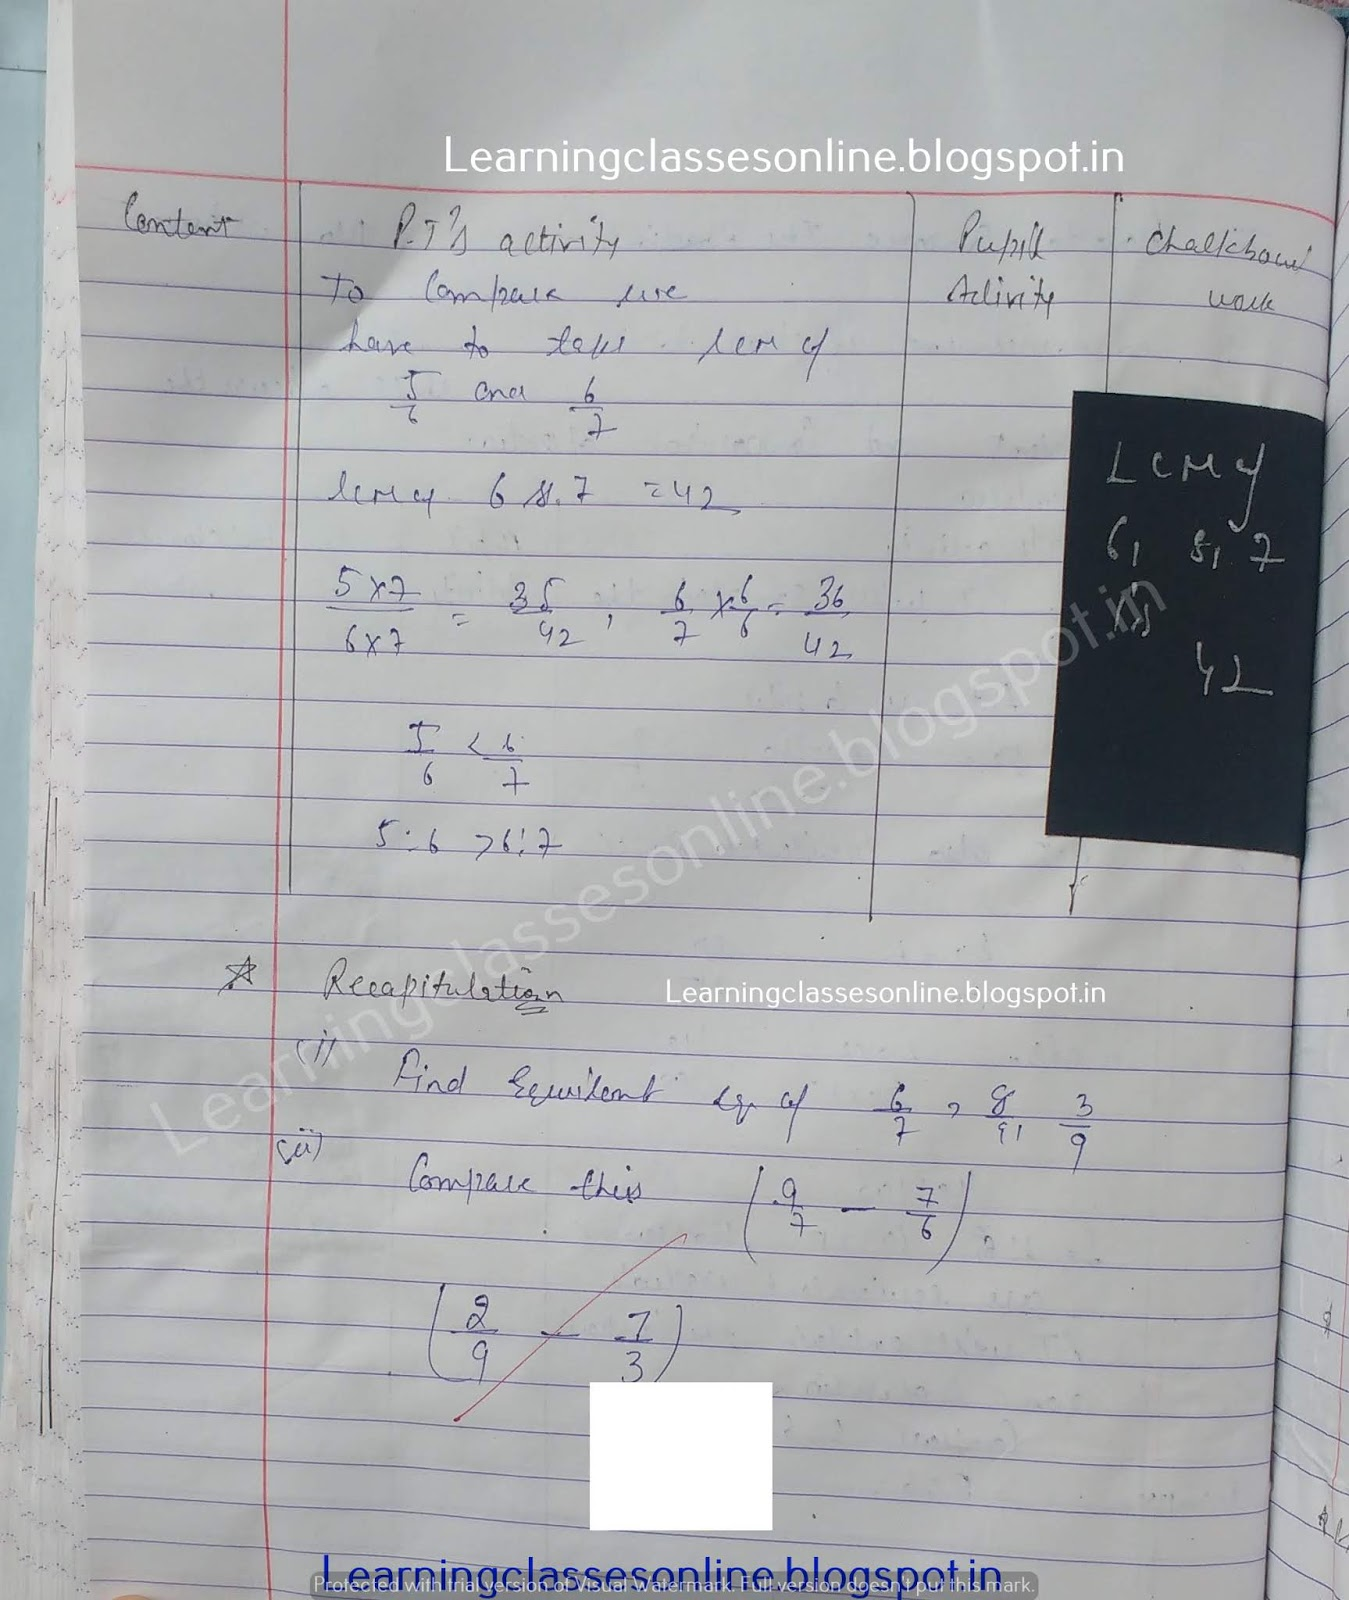 Brief Lesson Plan In Mathematics For High School,